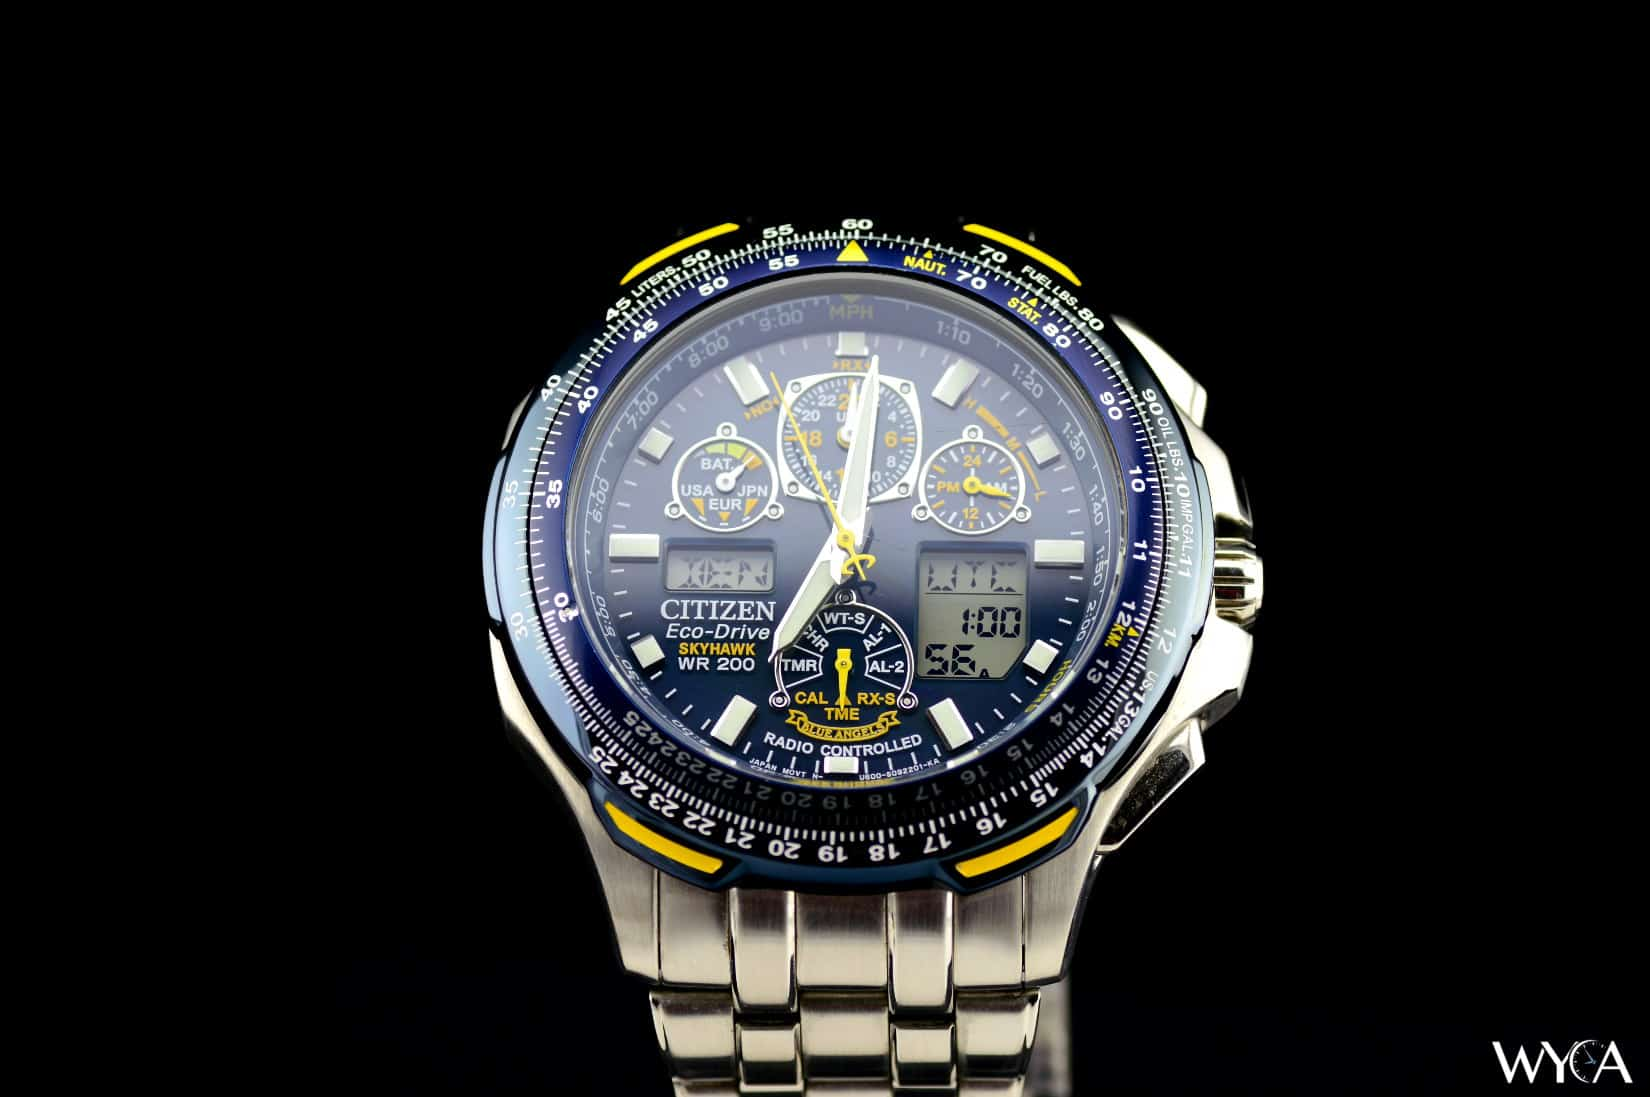 citizen eco-drive skyhawk wr200 instructions